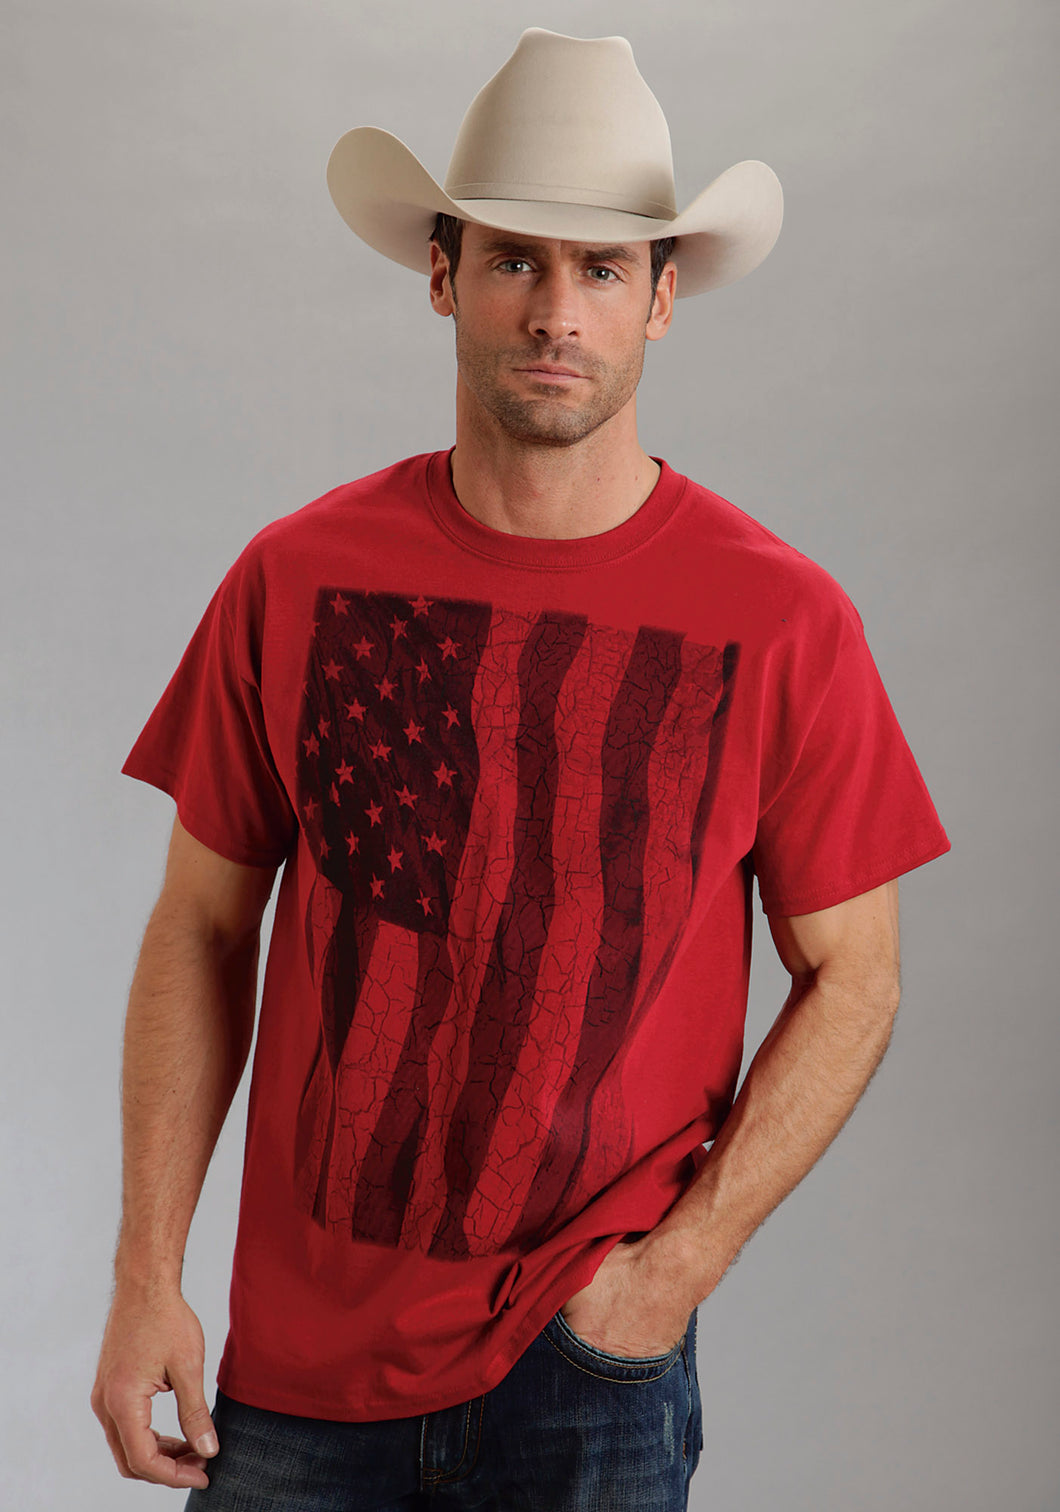 Americana Collection Americana Unisex Short Sleeve Shirt Distressed Flag Screen Print